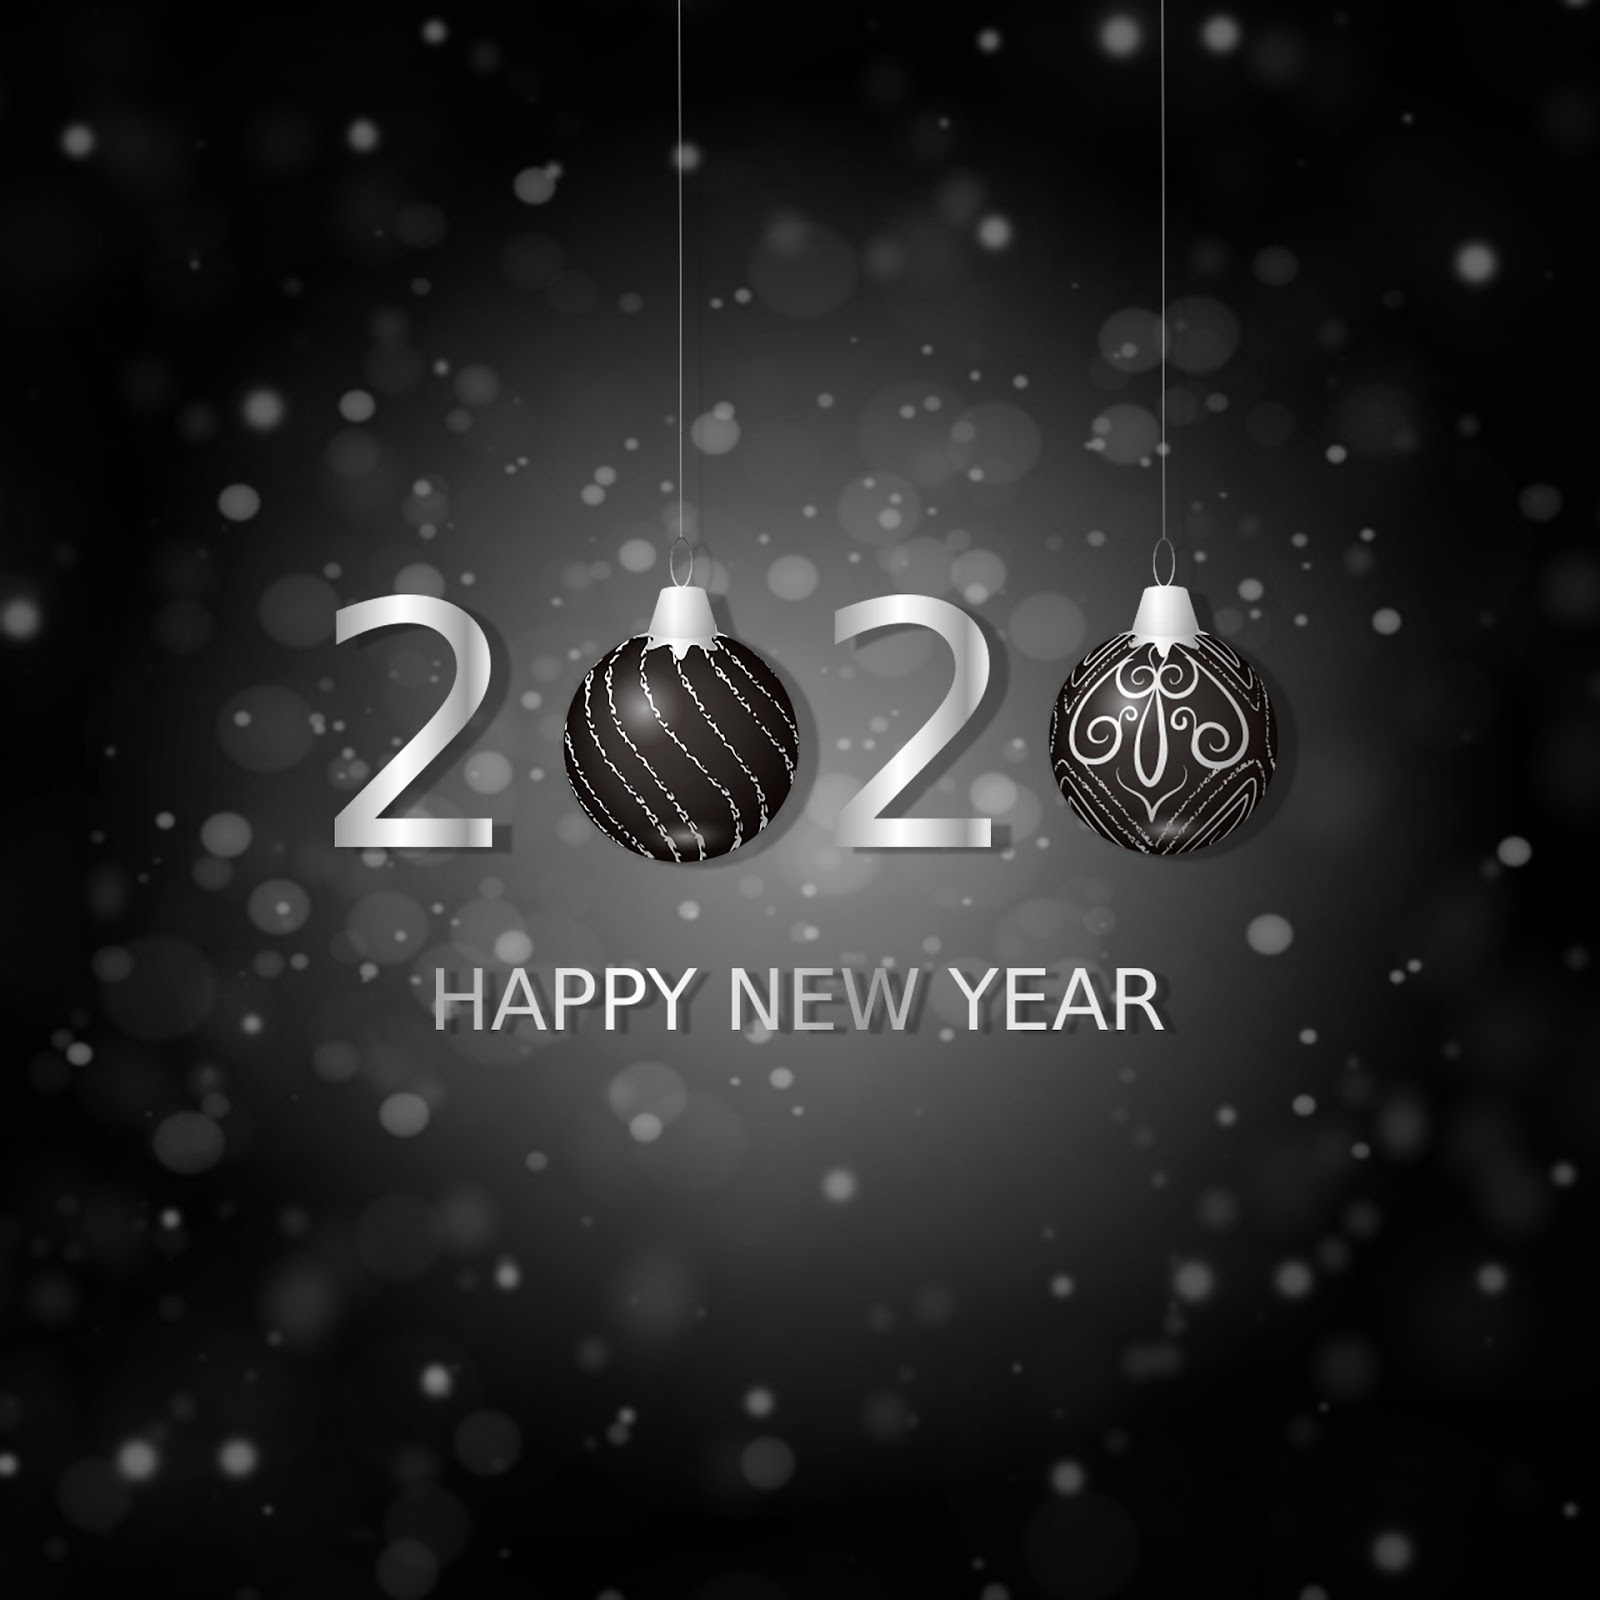 Happy New year and Merry Christmas HD Image Gif